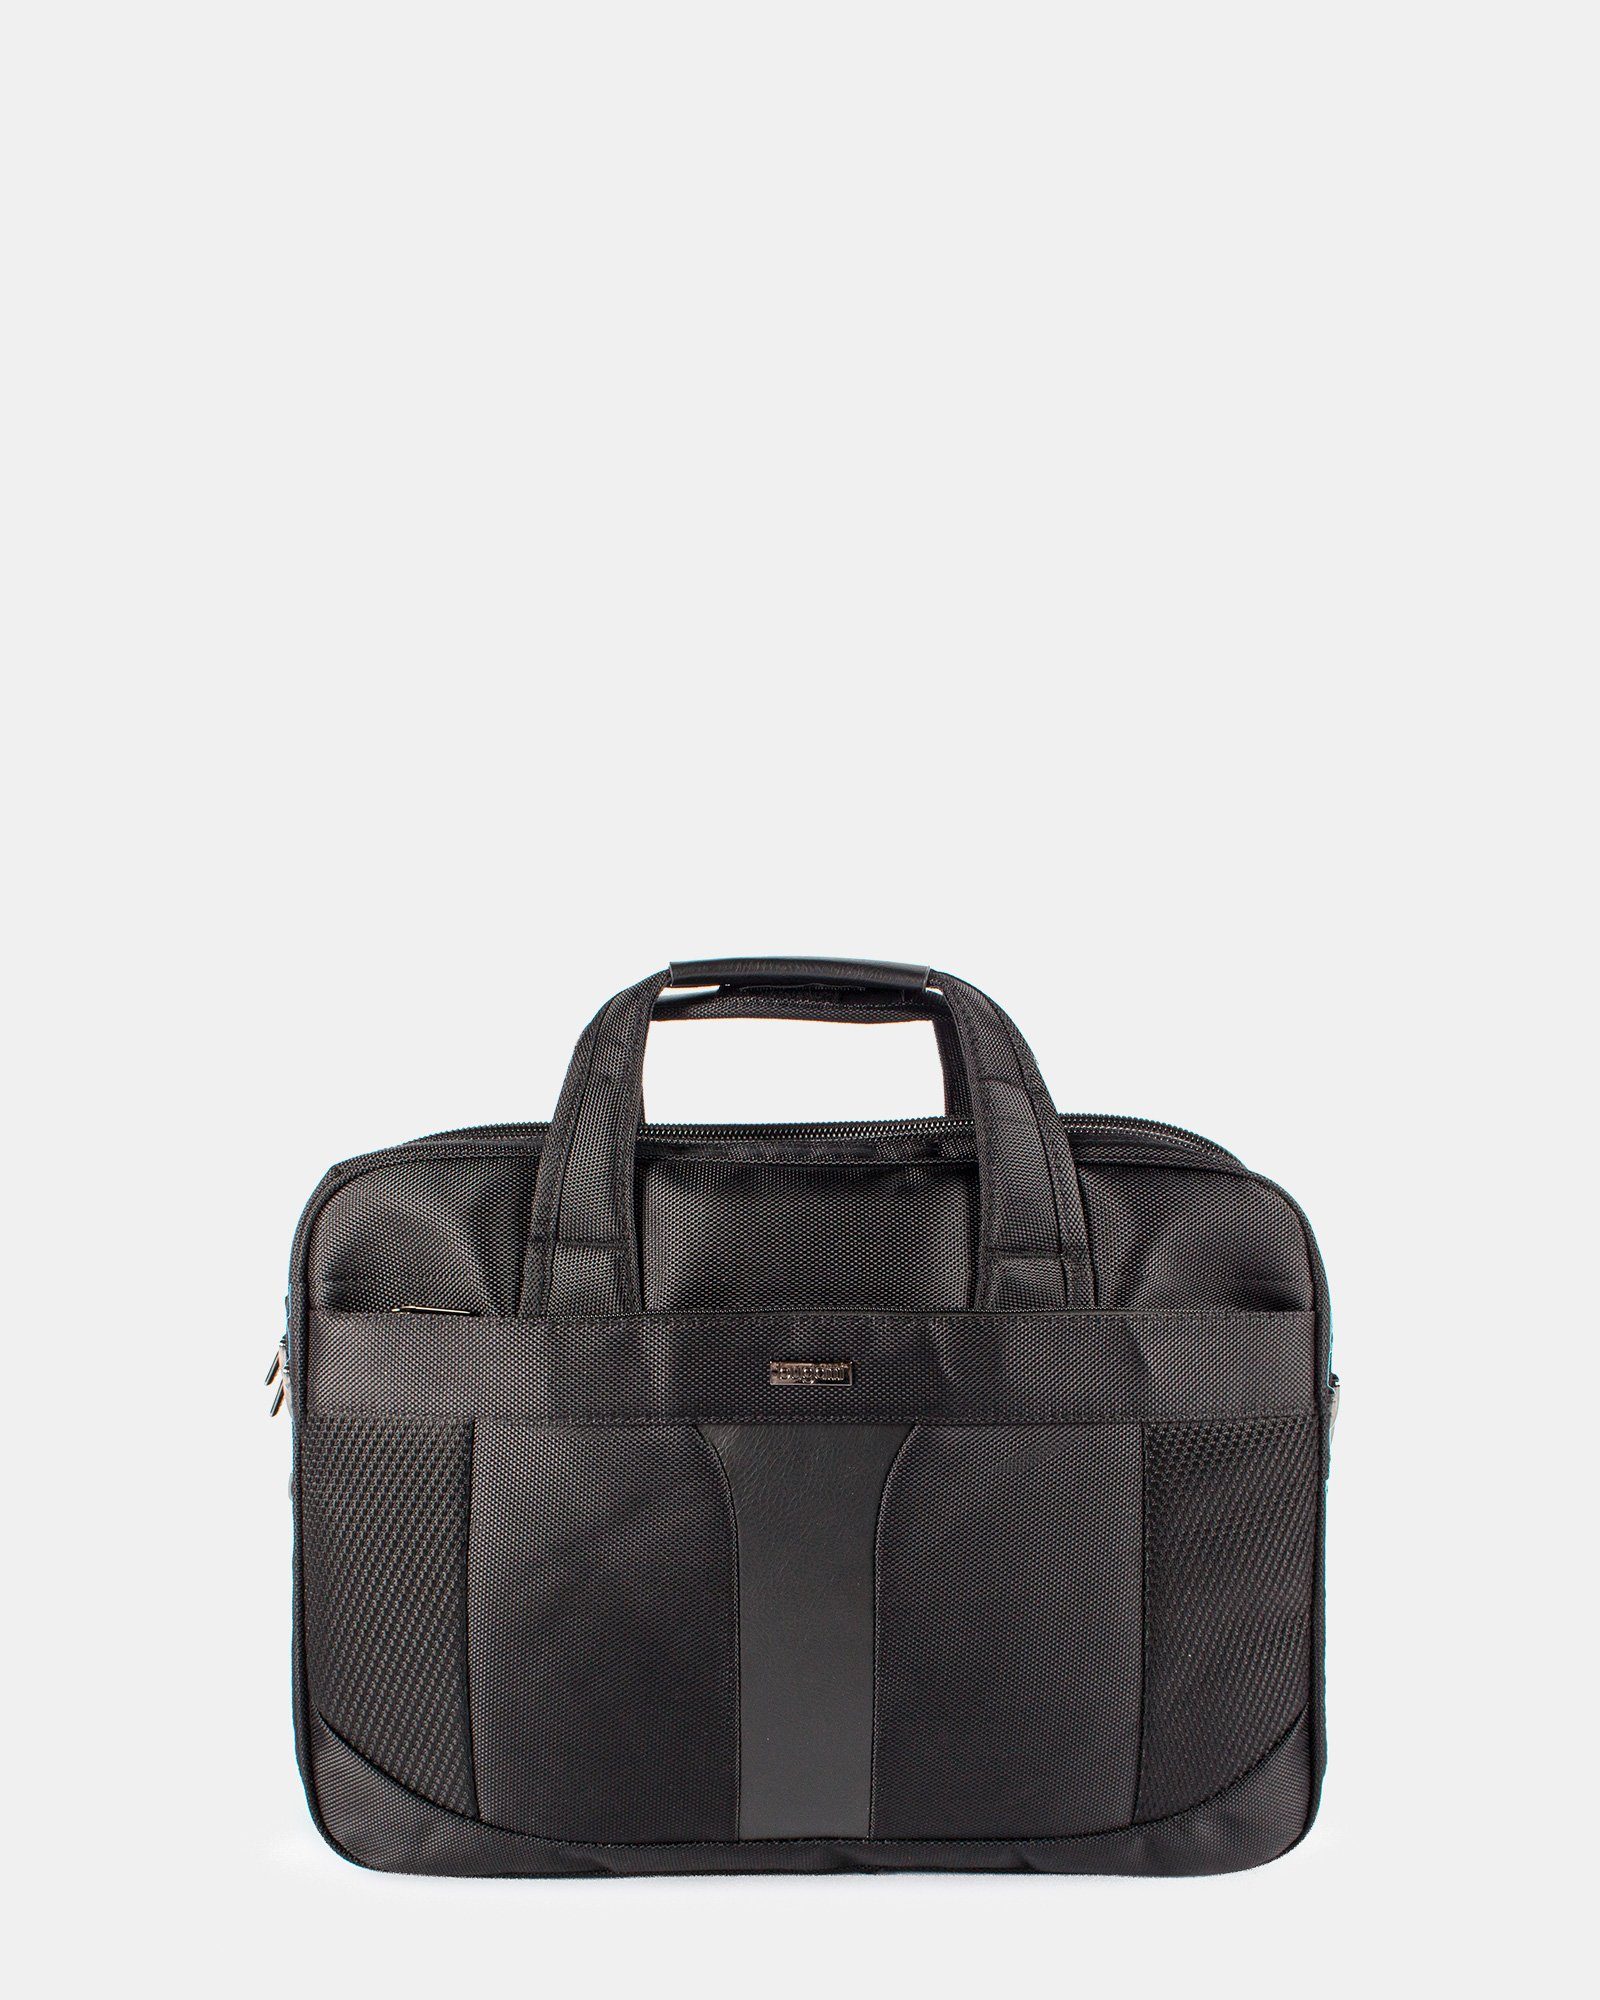 GREGORY-Executive briefcase - Bugatti - Zoom